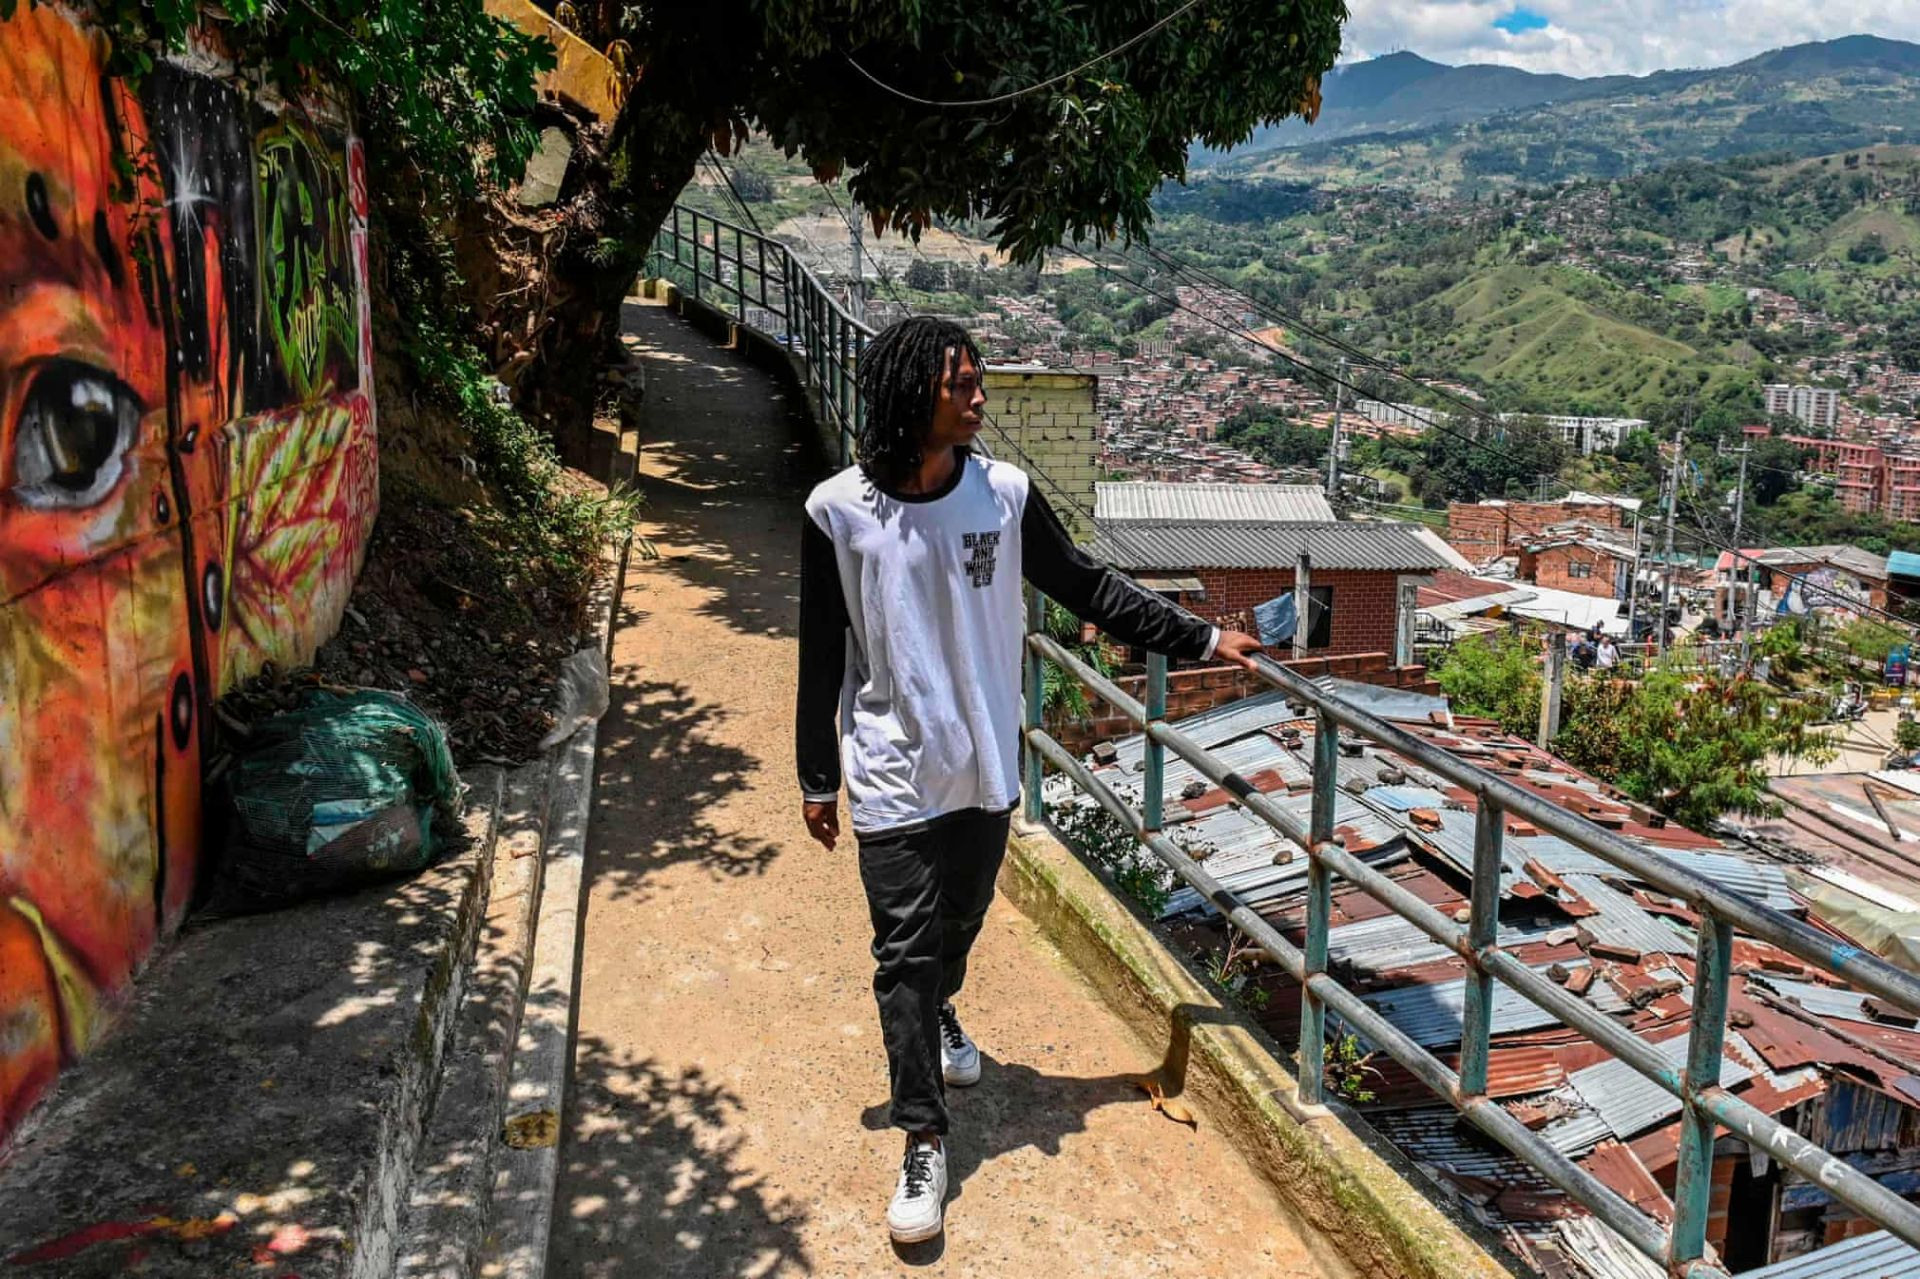 comuna 13 tu thanh pho nguy hiem nhat the gioi den thanh dia du lich colombia